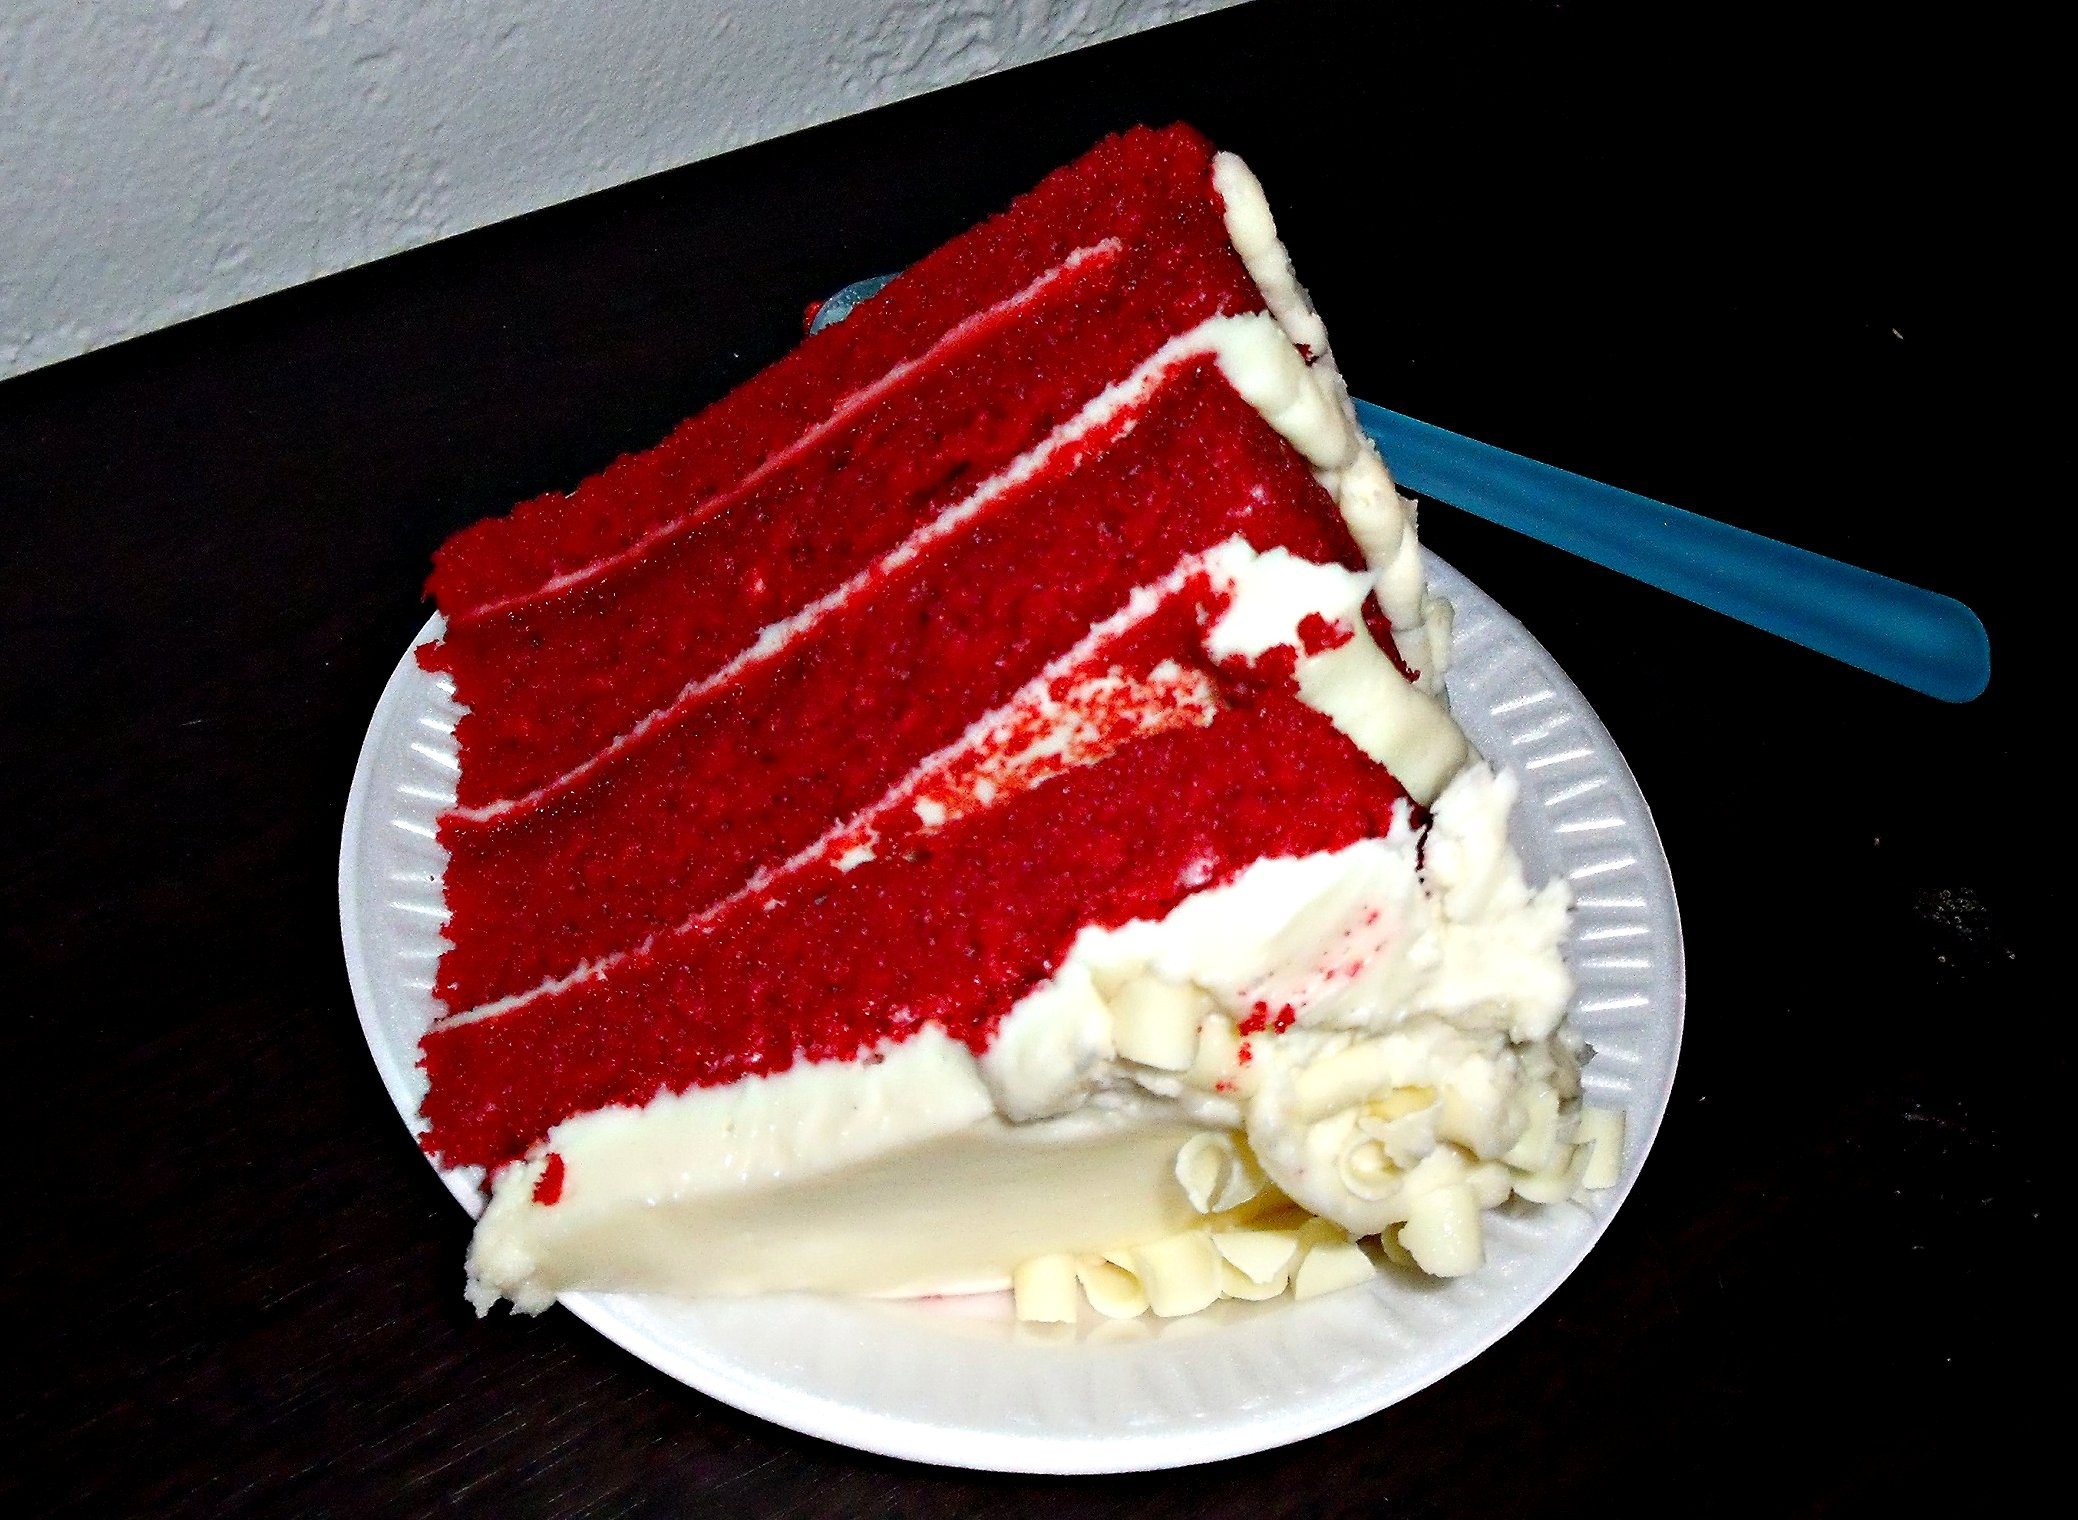 File:Red velvet cake slice.jpg - Wikipedia